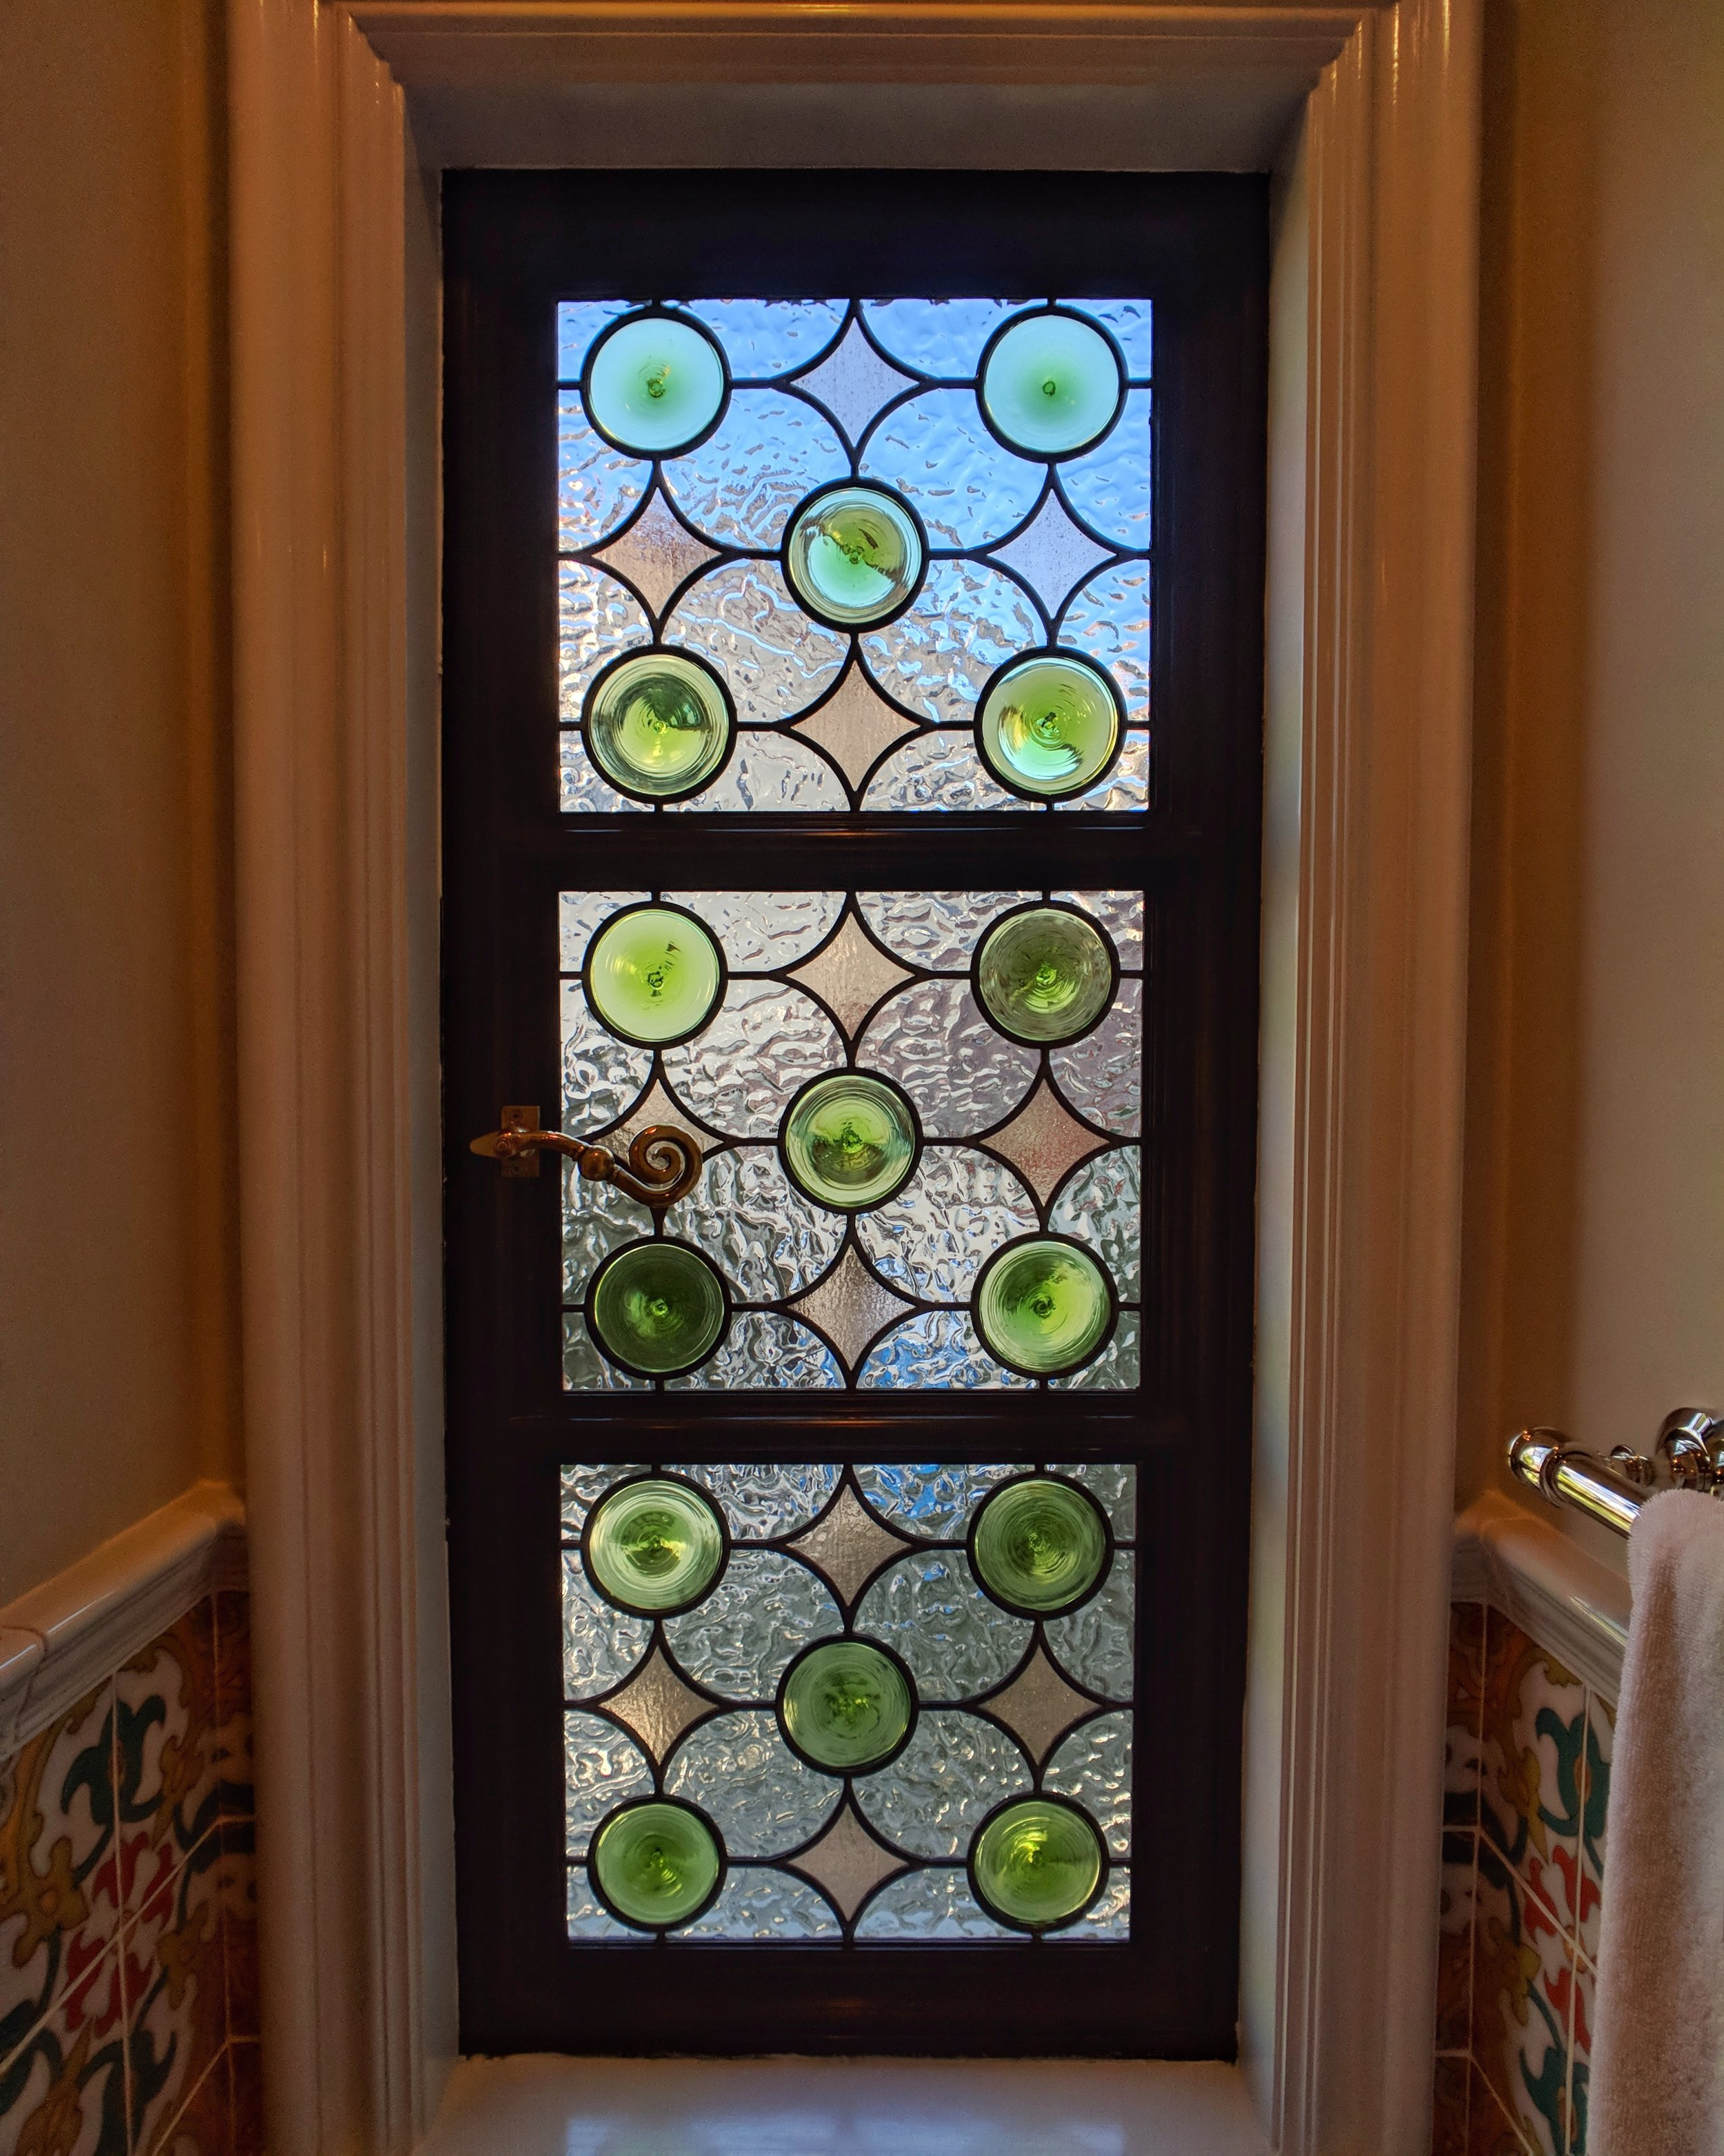 stained glass leaded glass design legacy glass studios menlo park bay area california custom design rondels spanish influence interior design tile privacy glass2.jpeg